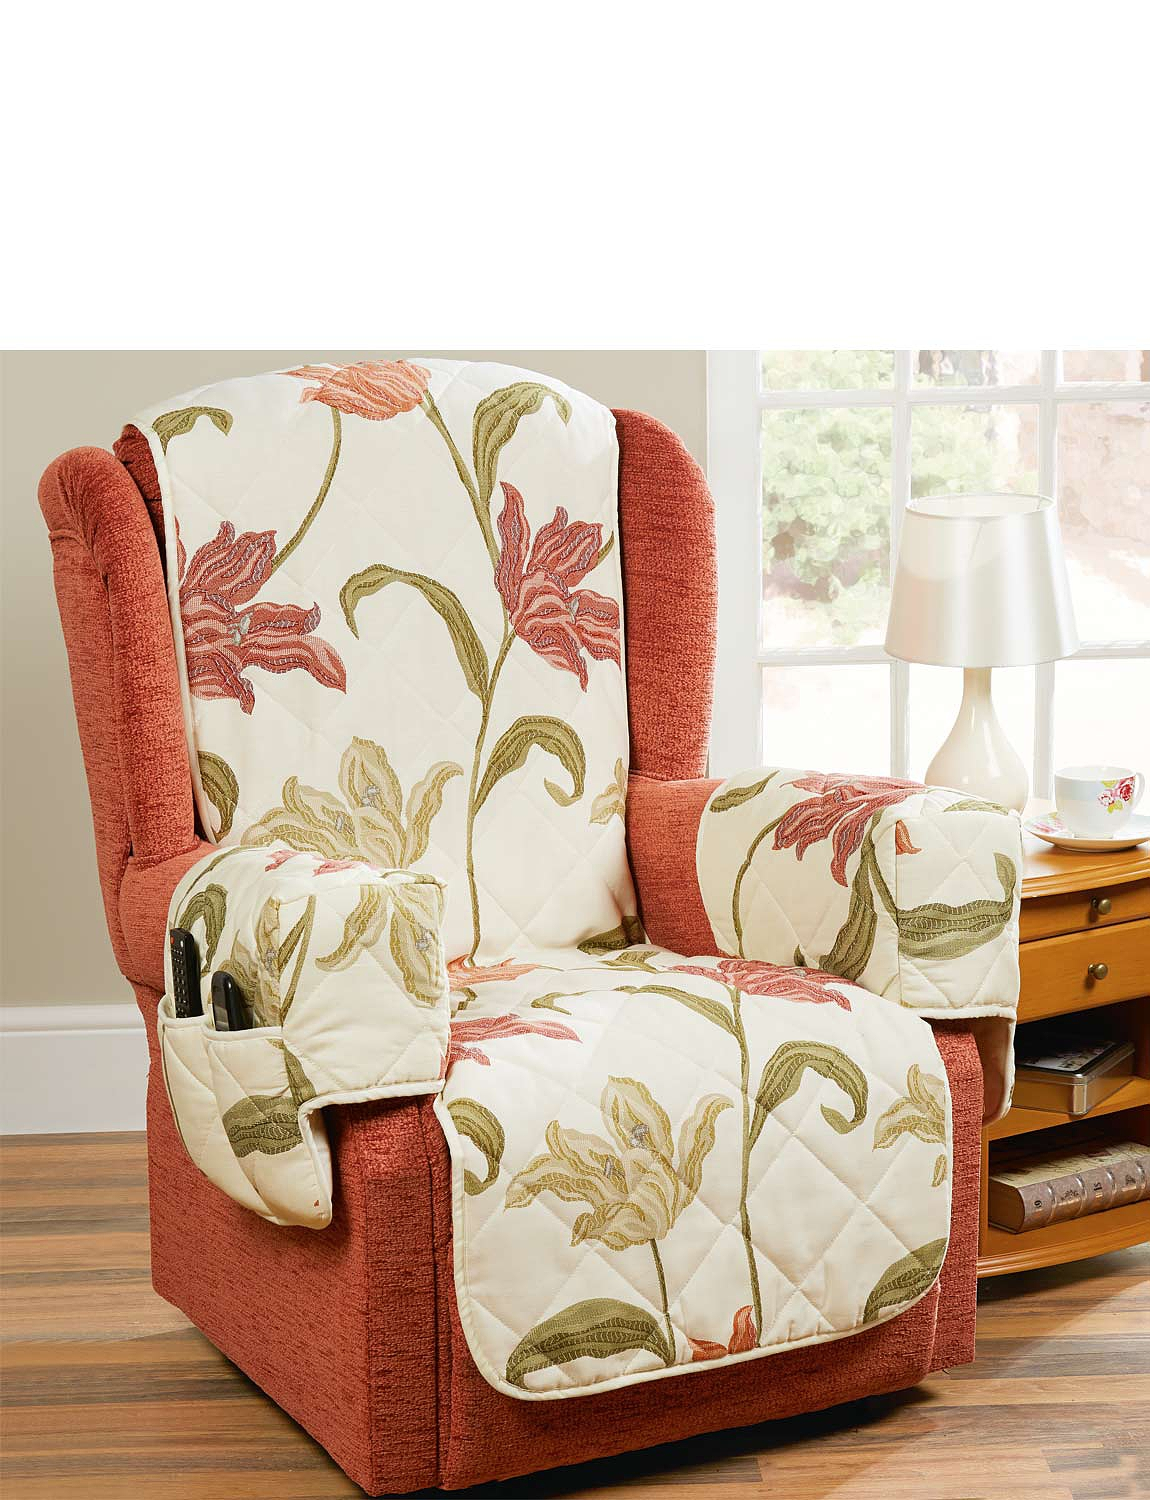 Kinsale Quilted Furniture Protectors | Chums : quilted furniture protectors - Adamdwight.com